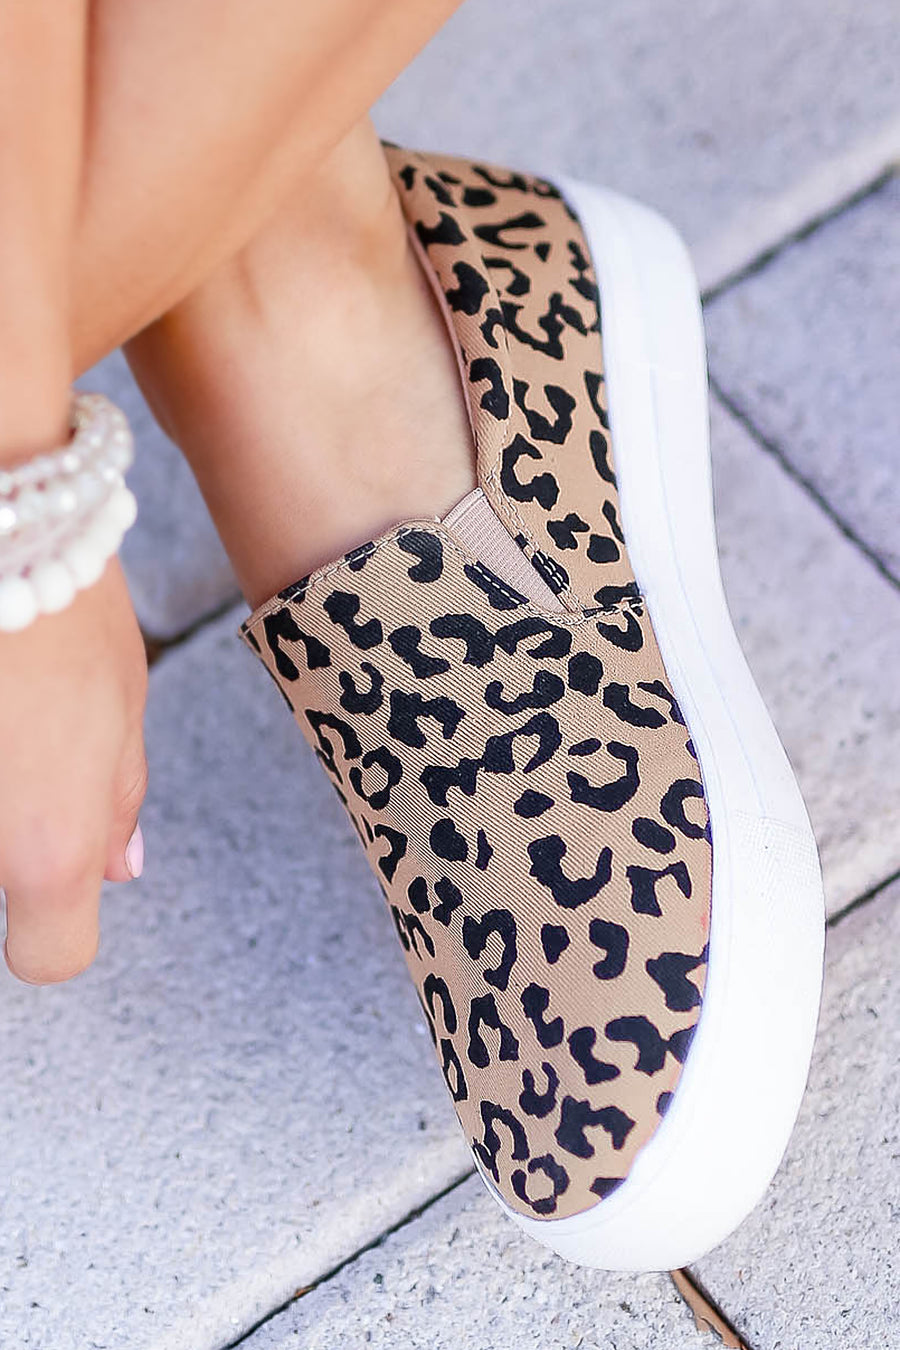 Better Get Going Sneakers - Leopard closet candy women's trendy animal print slip on sneakers 2